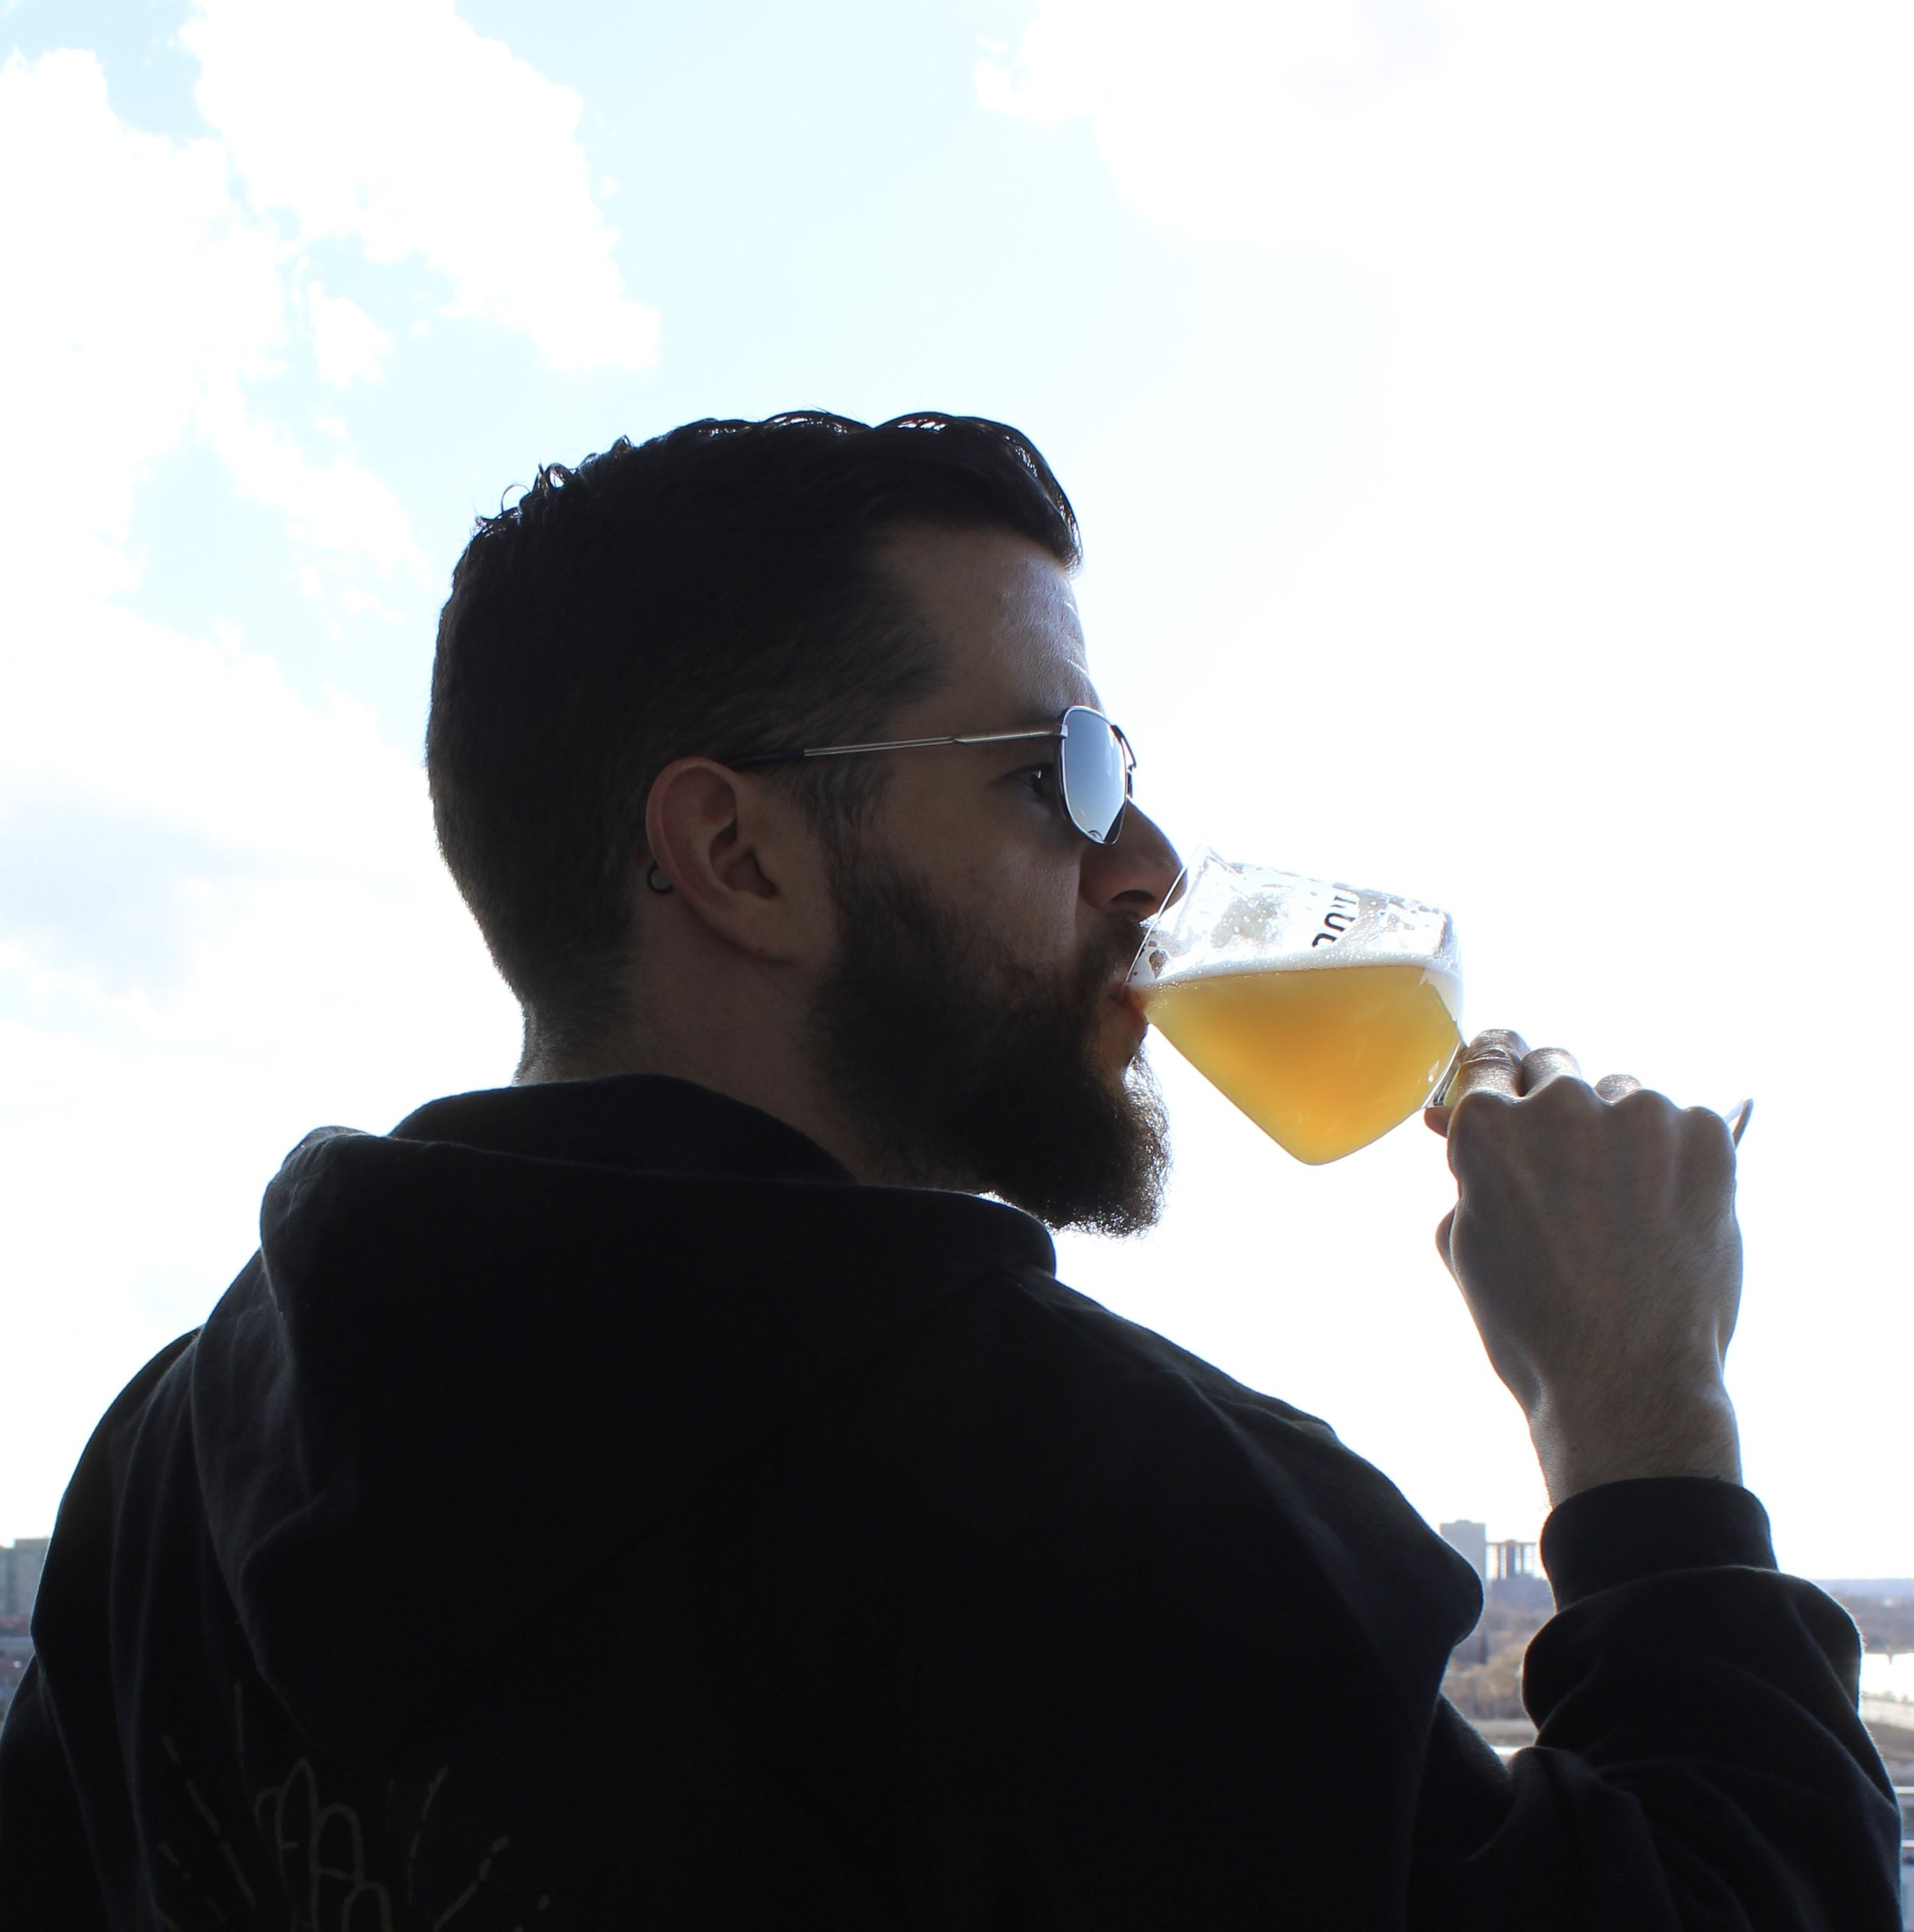 Nathan - Nathan is a craft beer enthusiast from Ottawa, ON. He is the Co-Founder of @TeamLactose, he's passionate about travelling for beer and he loves talking about beer from Ontario, Quebec and beyond.Follow Nathan on Instagram, Twitter and Facebook.